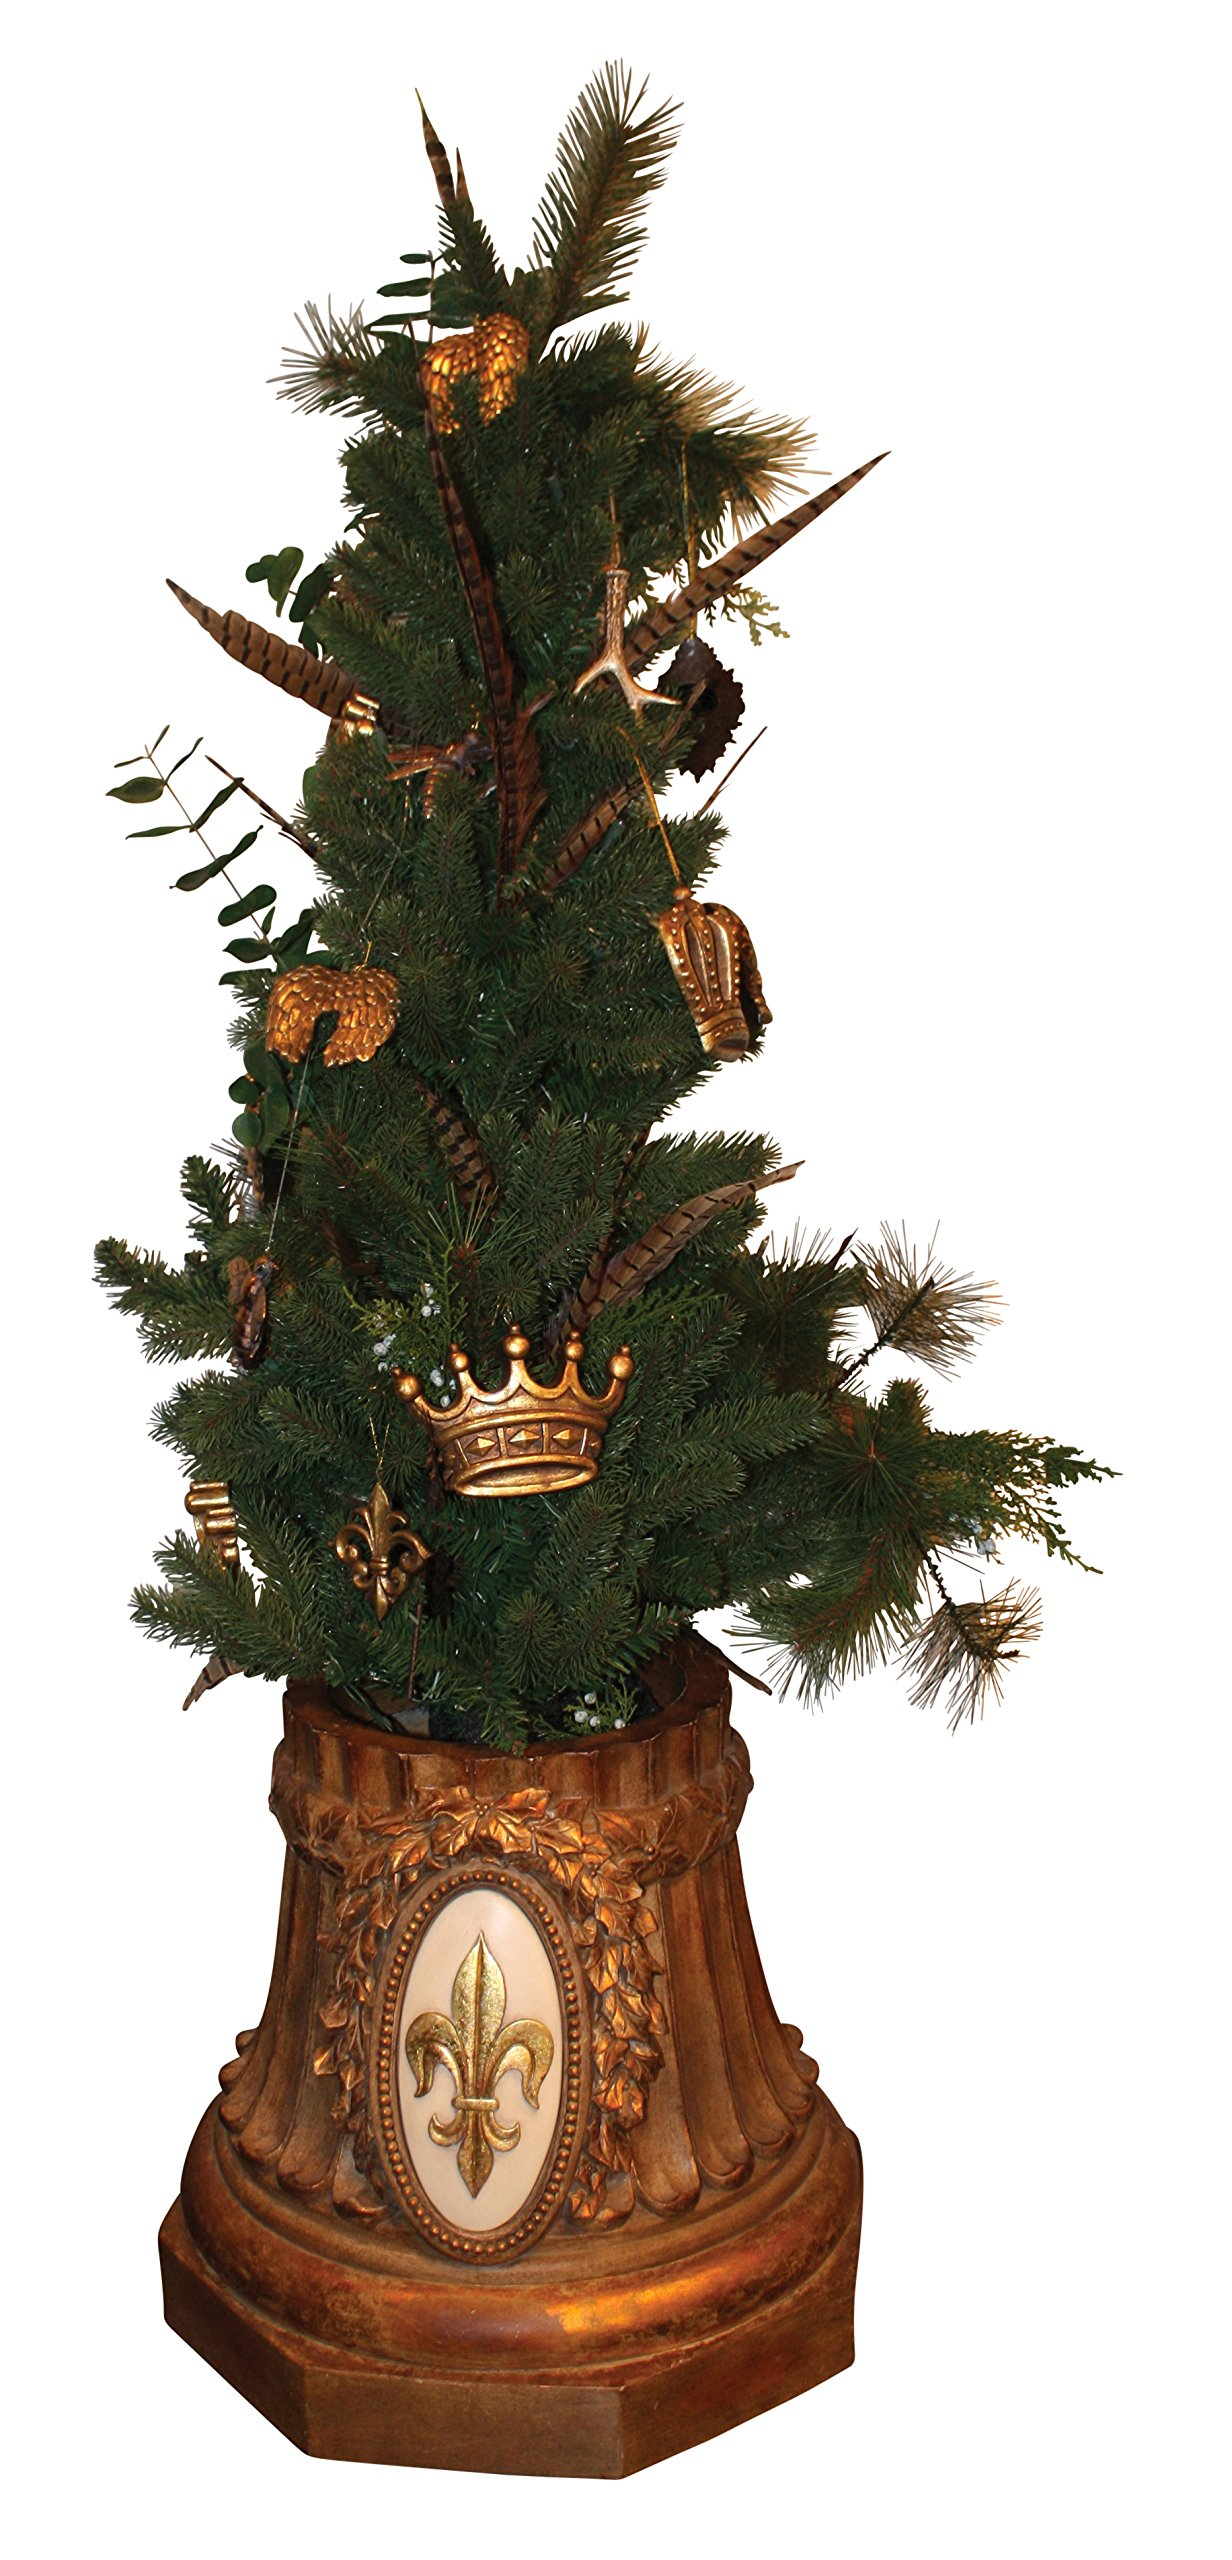 Ornate Gold Fleur de Lis Tree Holder | Christmas Xmas Urn Stand European Old World by My Swanky Home (Image #1)